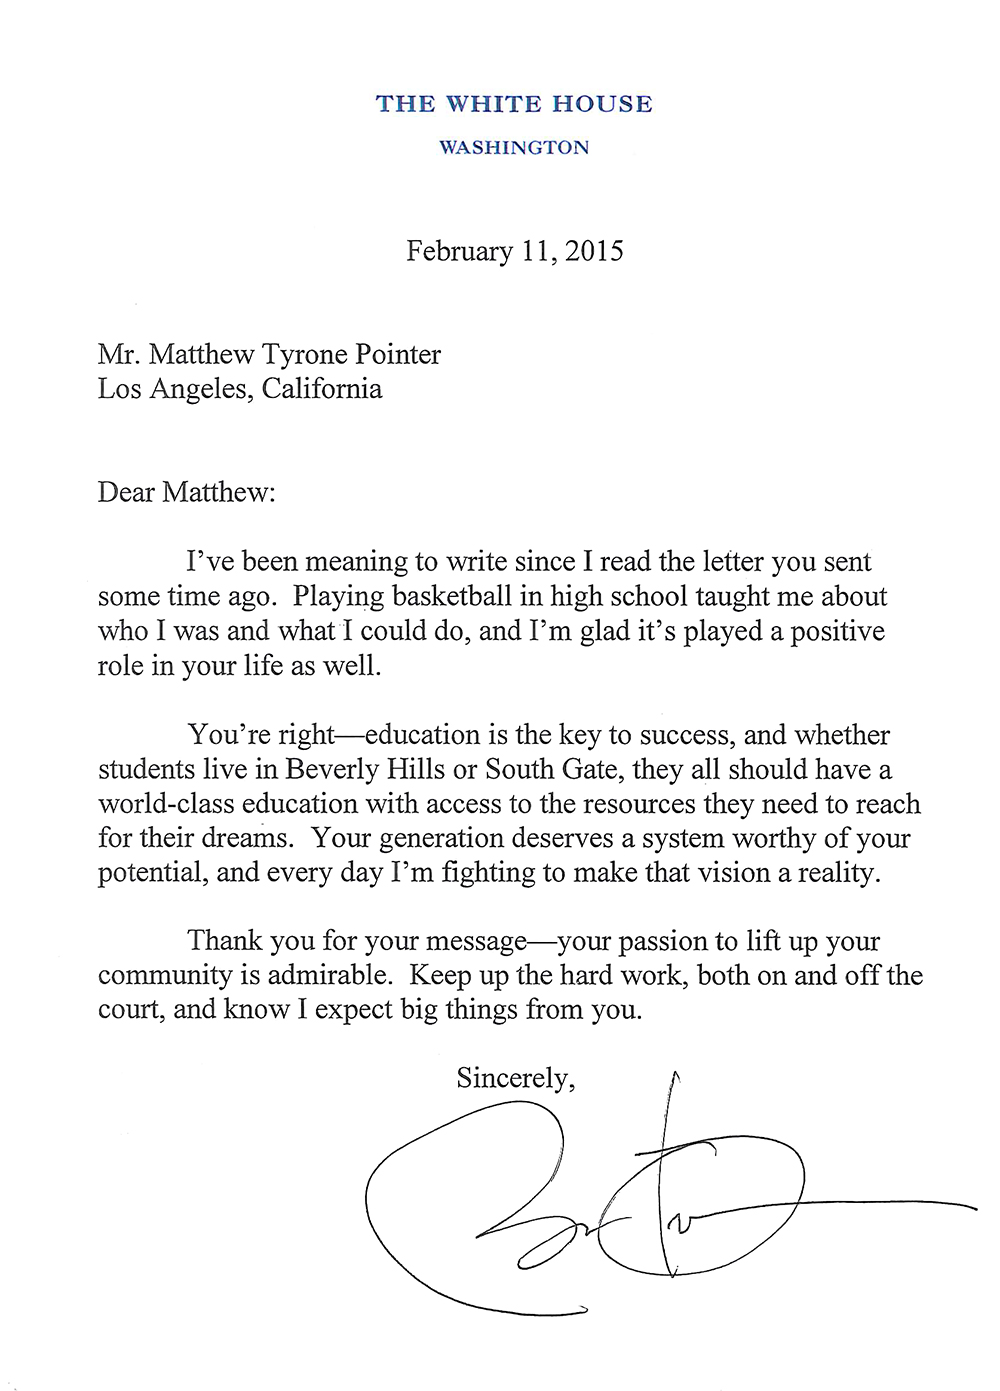 asked and answered matthew s letter to the president whitehouse gov ...